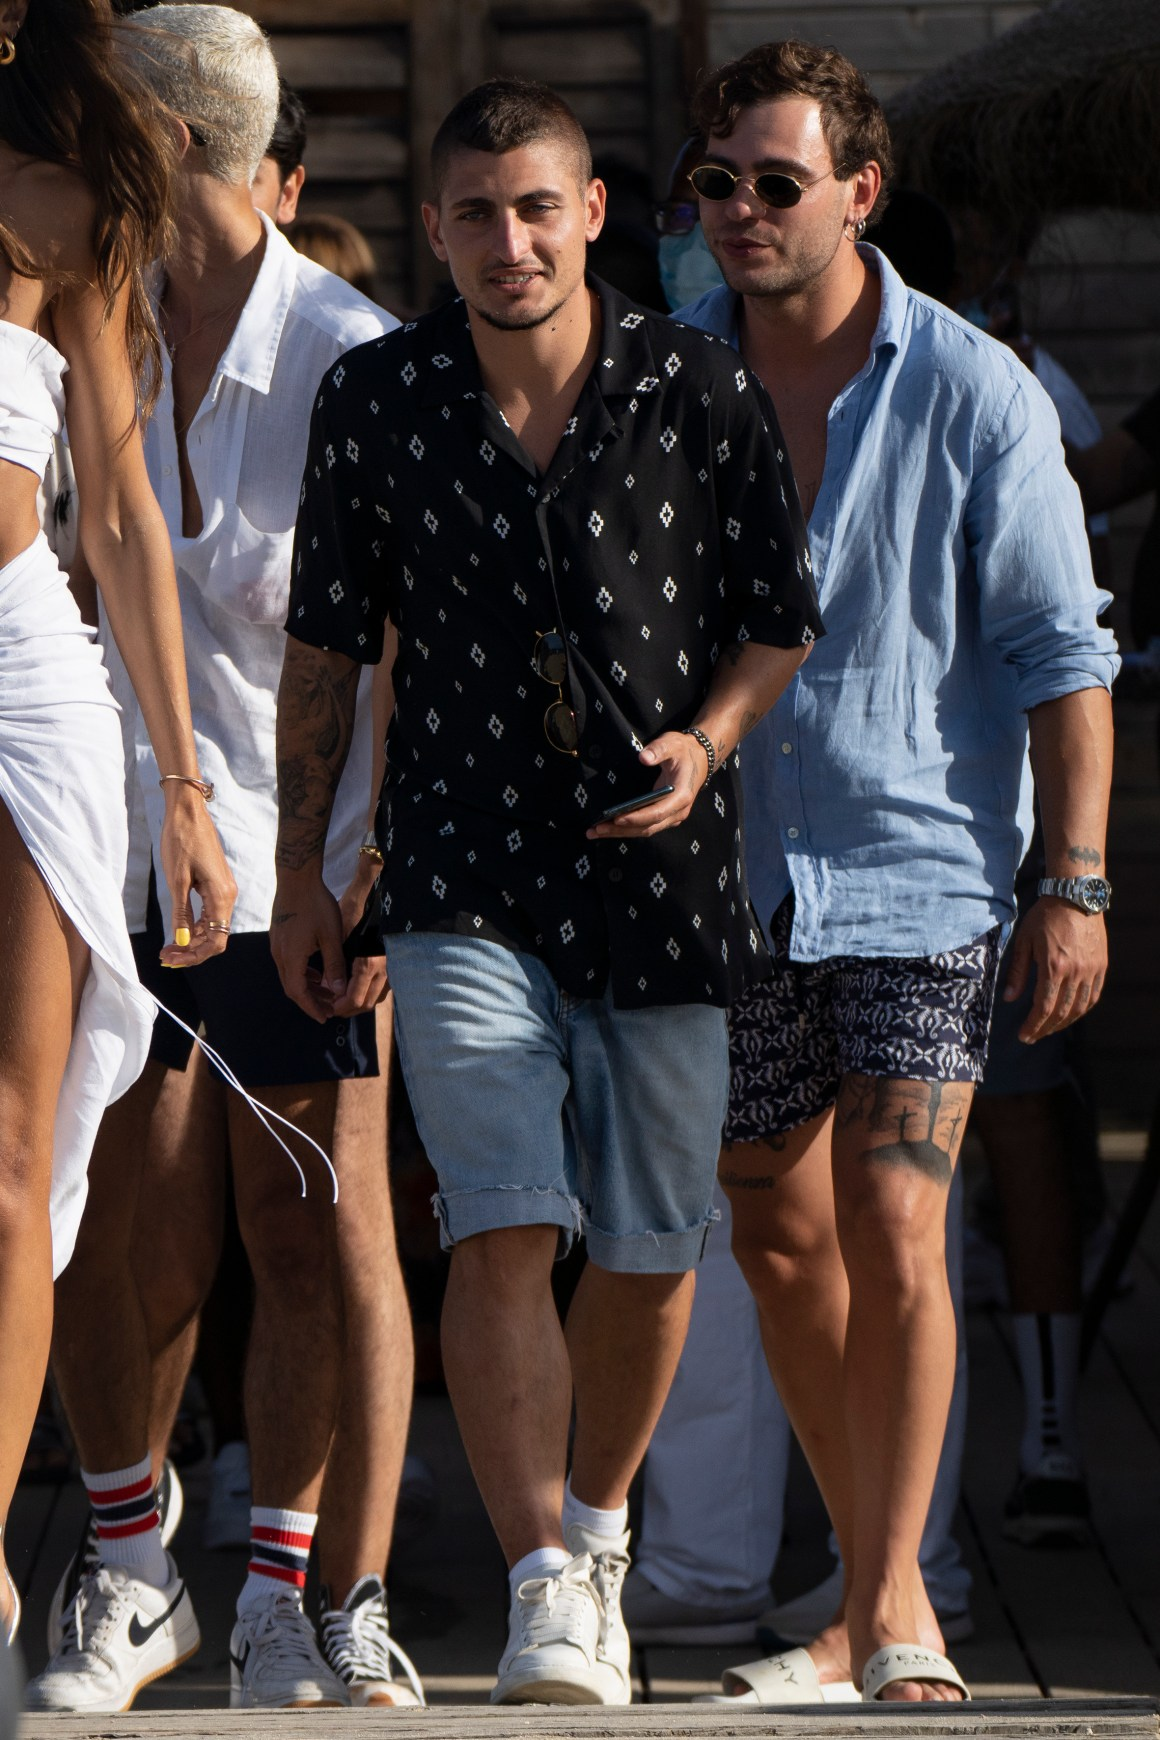 PSG star Marco Verratti enjoyed a day out with Neymar